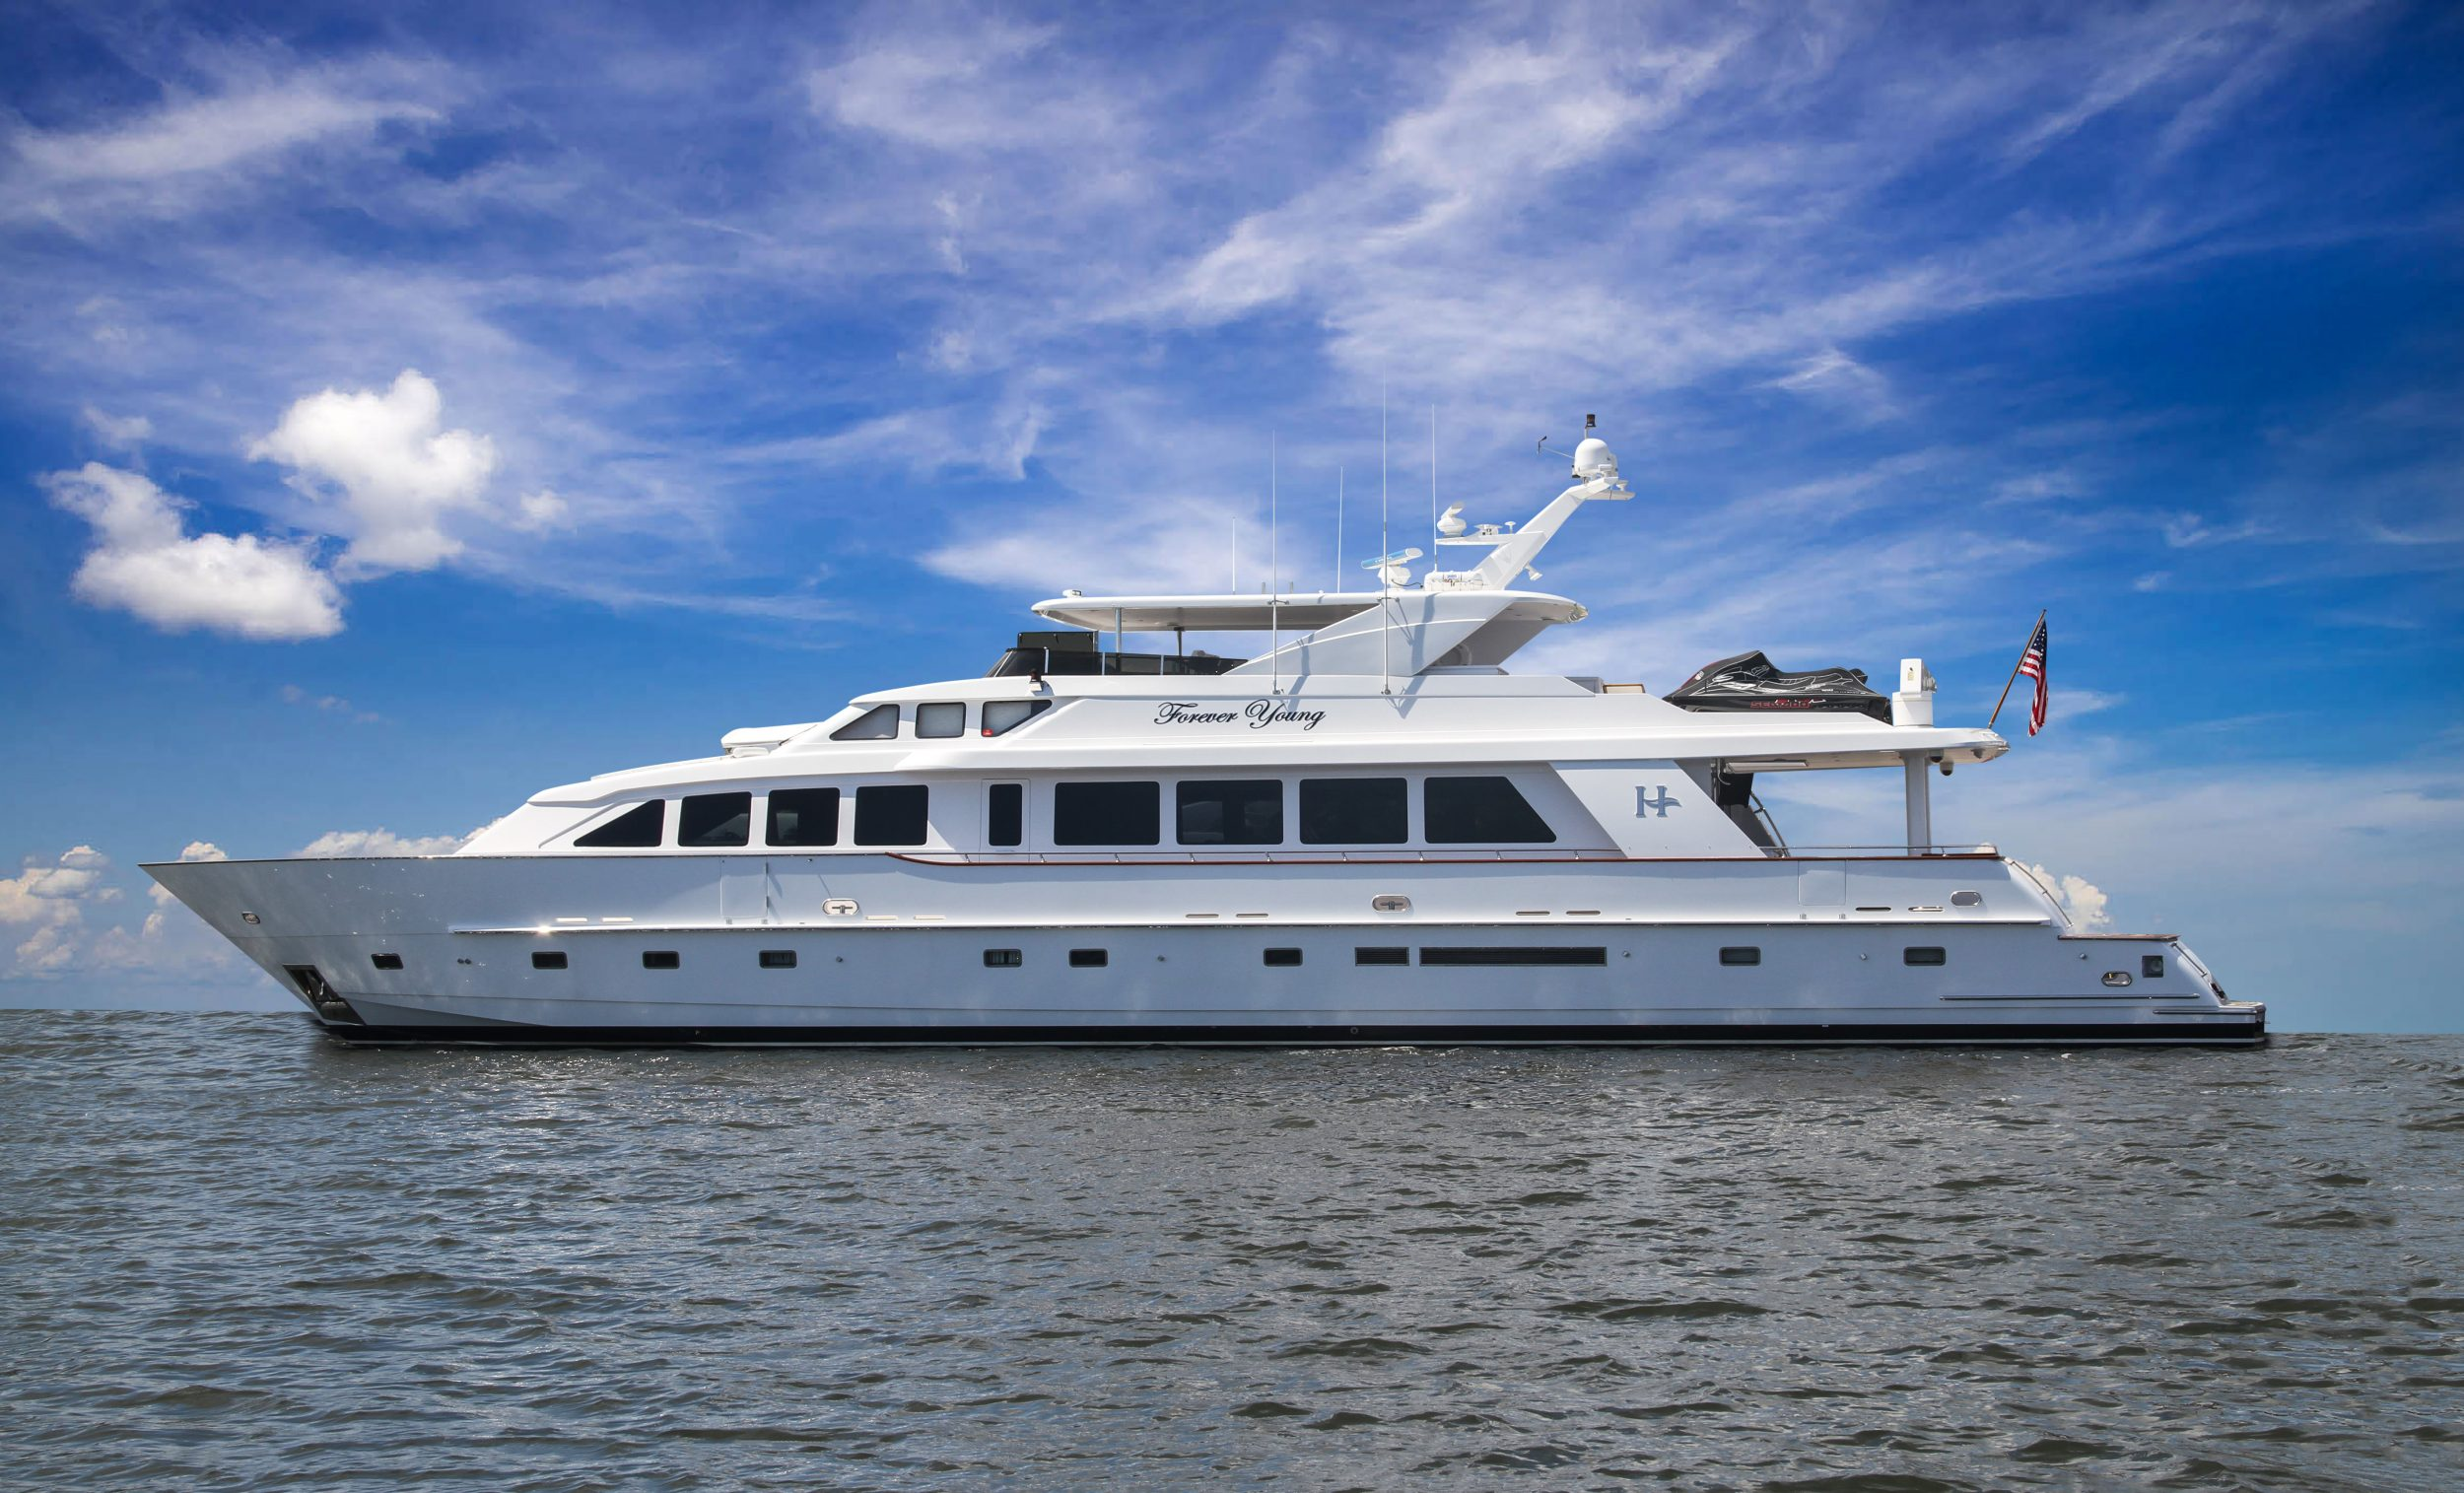 HARGRAVE Yachts, Superyachts, Luxury Yachts, Yachts for